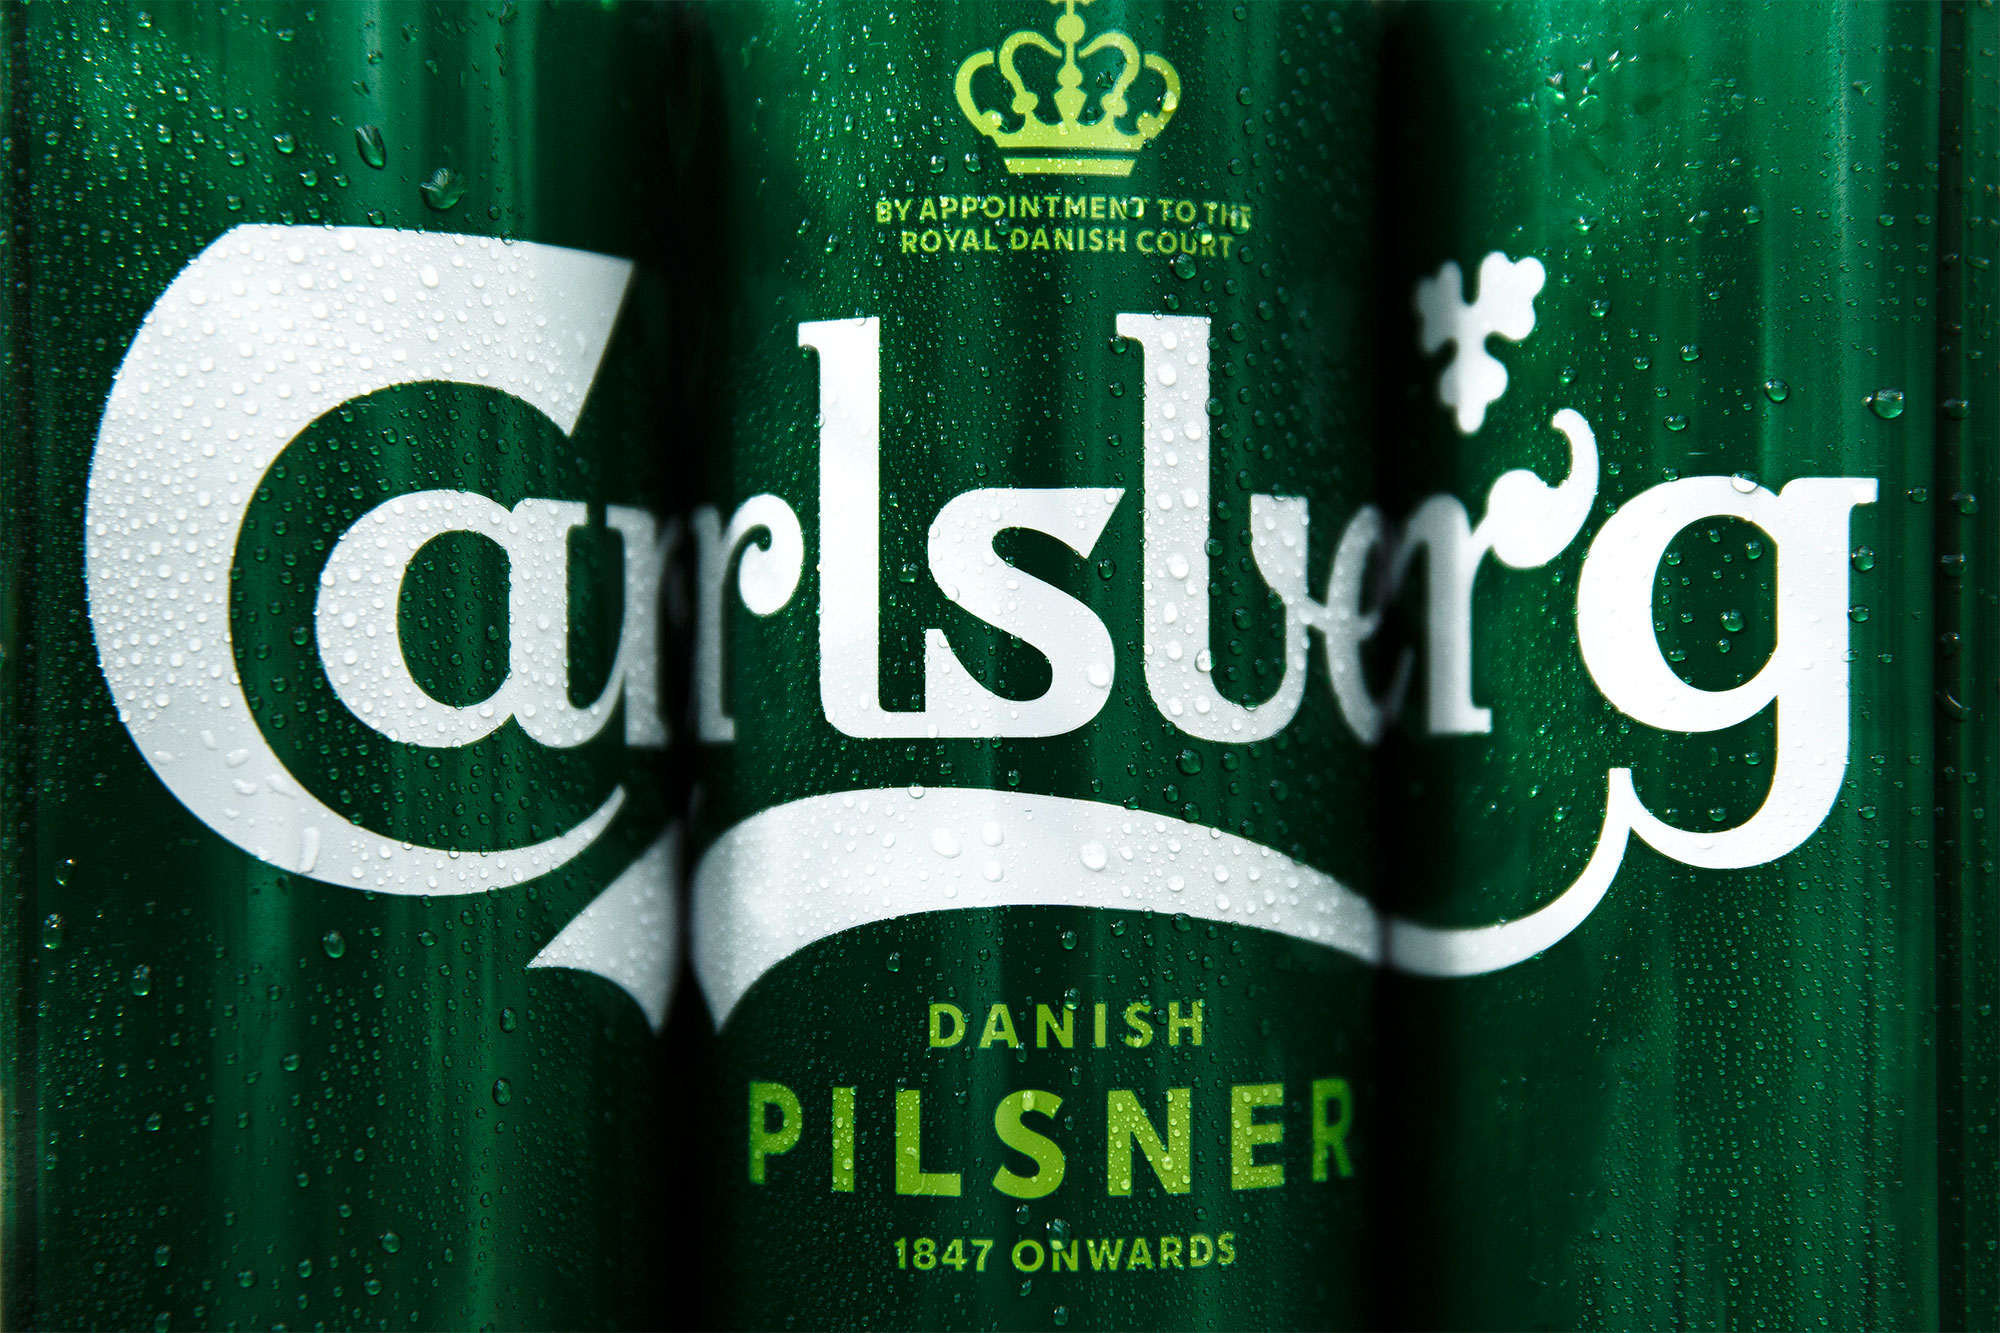 Carlsberg-Close-Up